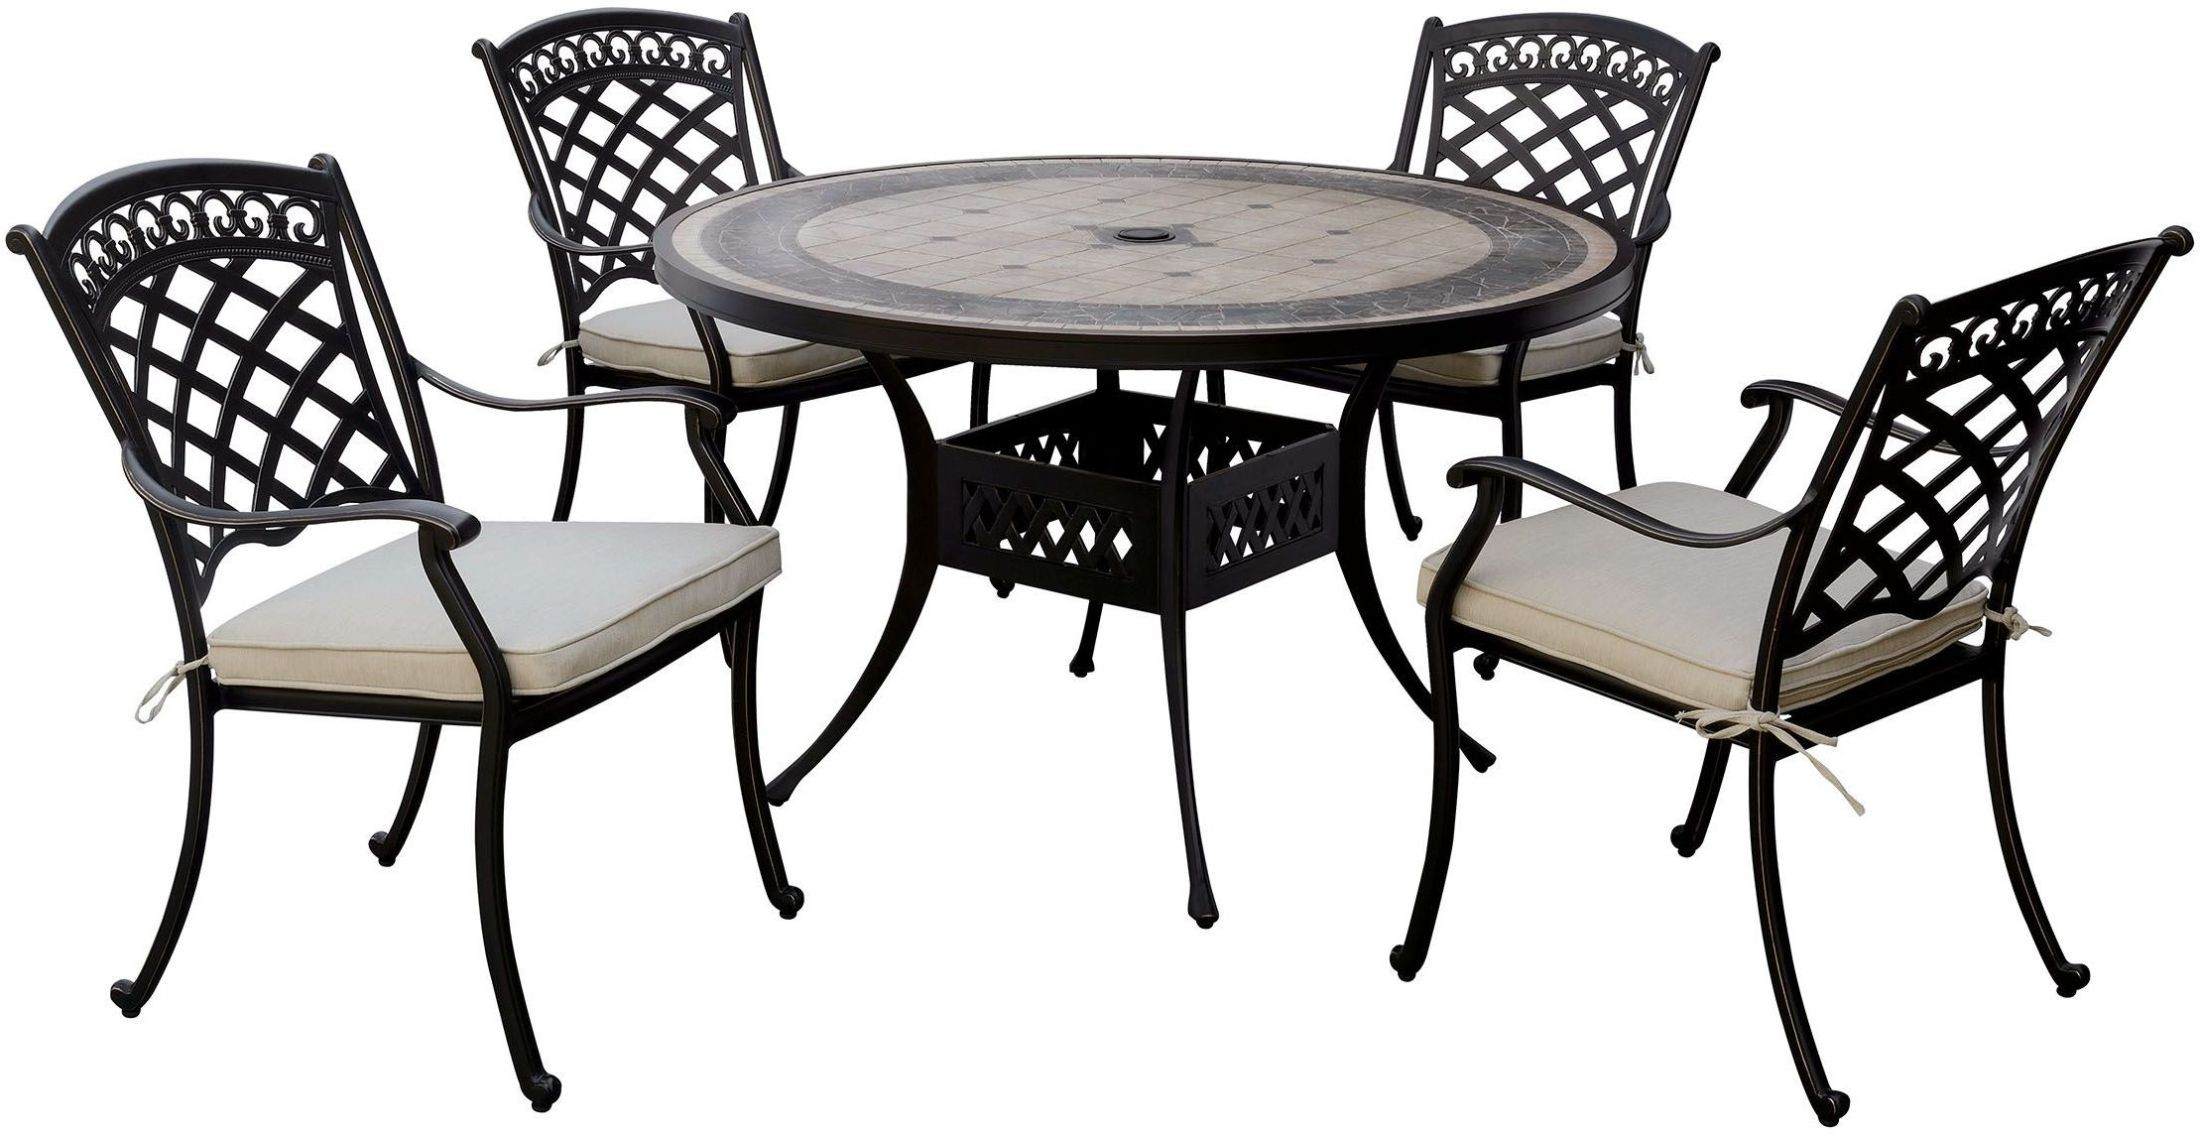 Charissa Antique Black Round Dining Table From Furniture Of America Coleman Furniture